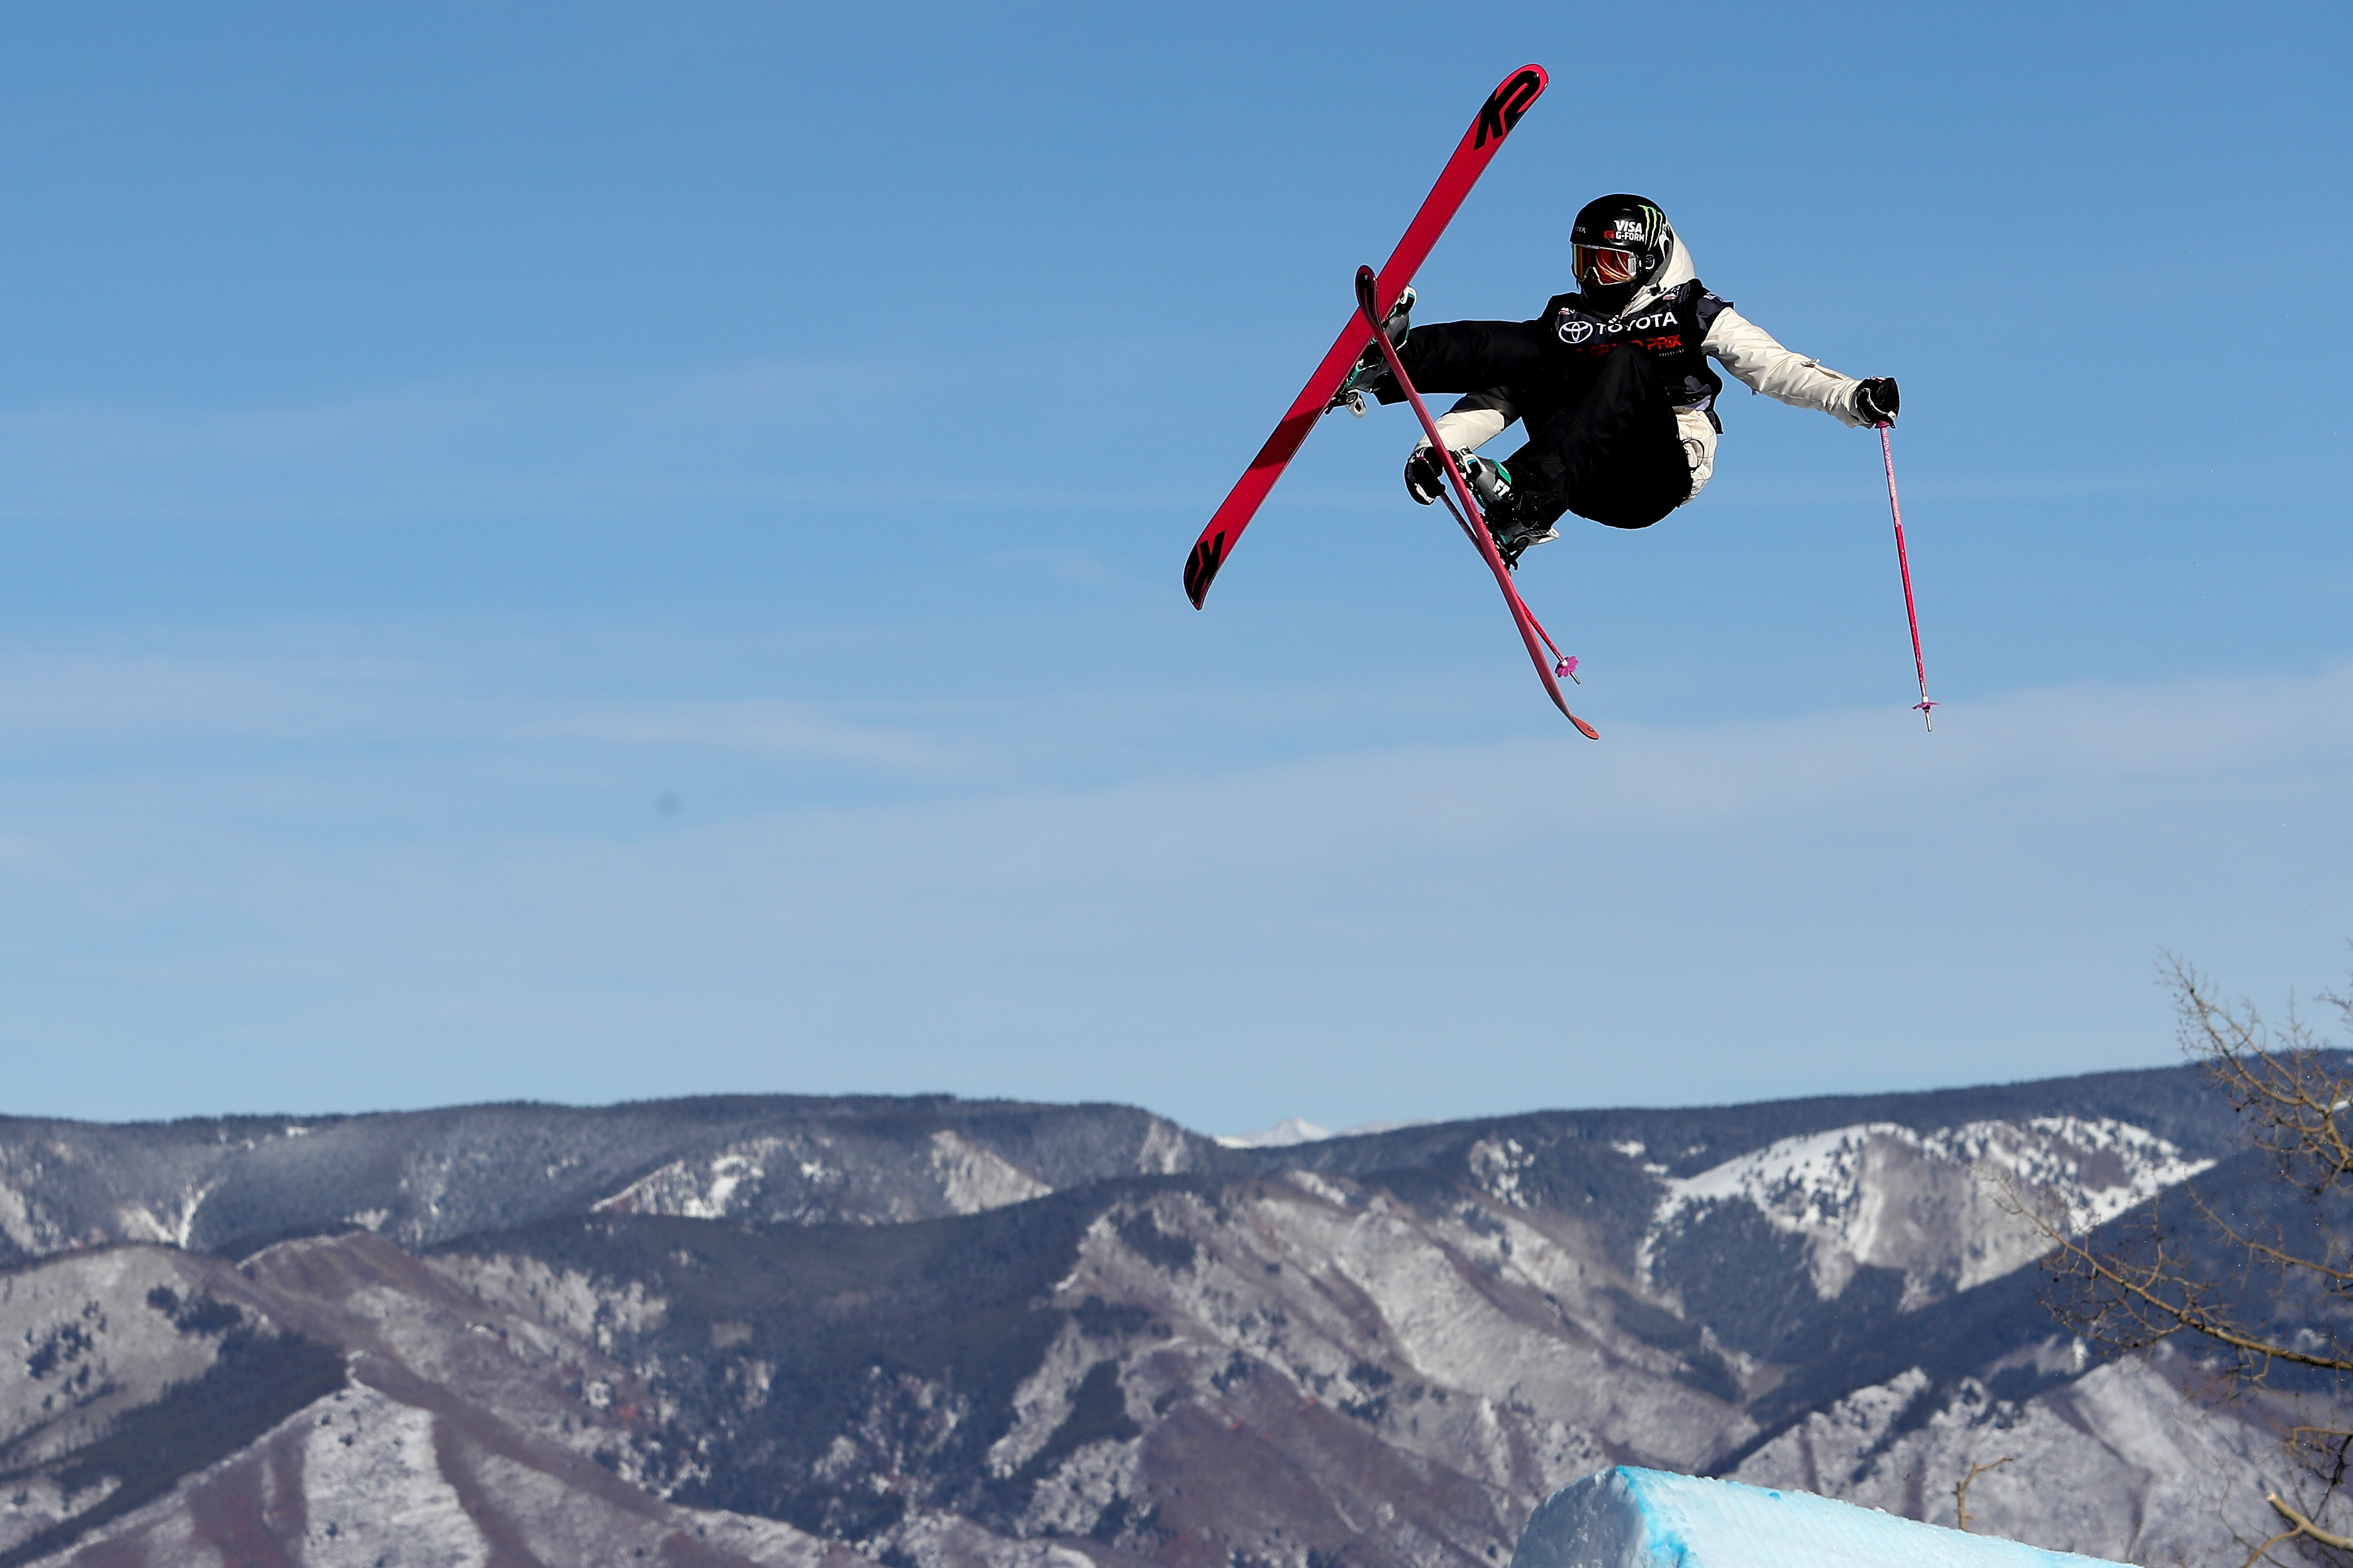 Who Is Maggie Voisin? The Olympic Freestyle Skier Is Coming Back ...